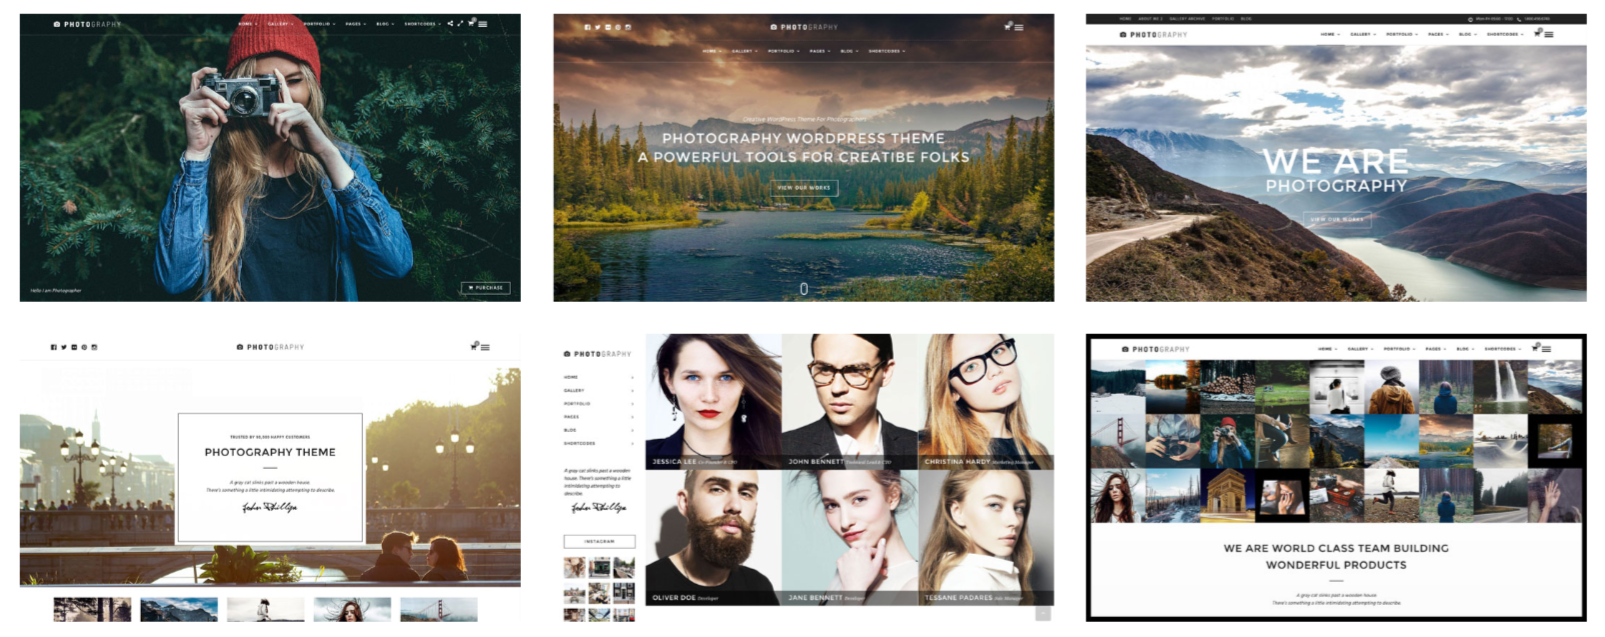 Photography WordPress theme homepage layouts Demos